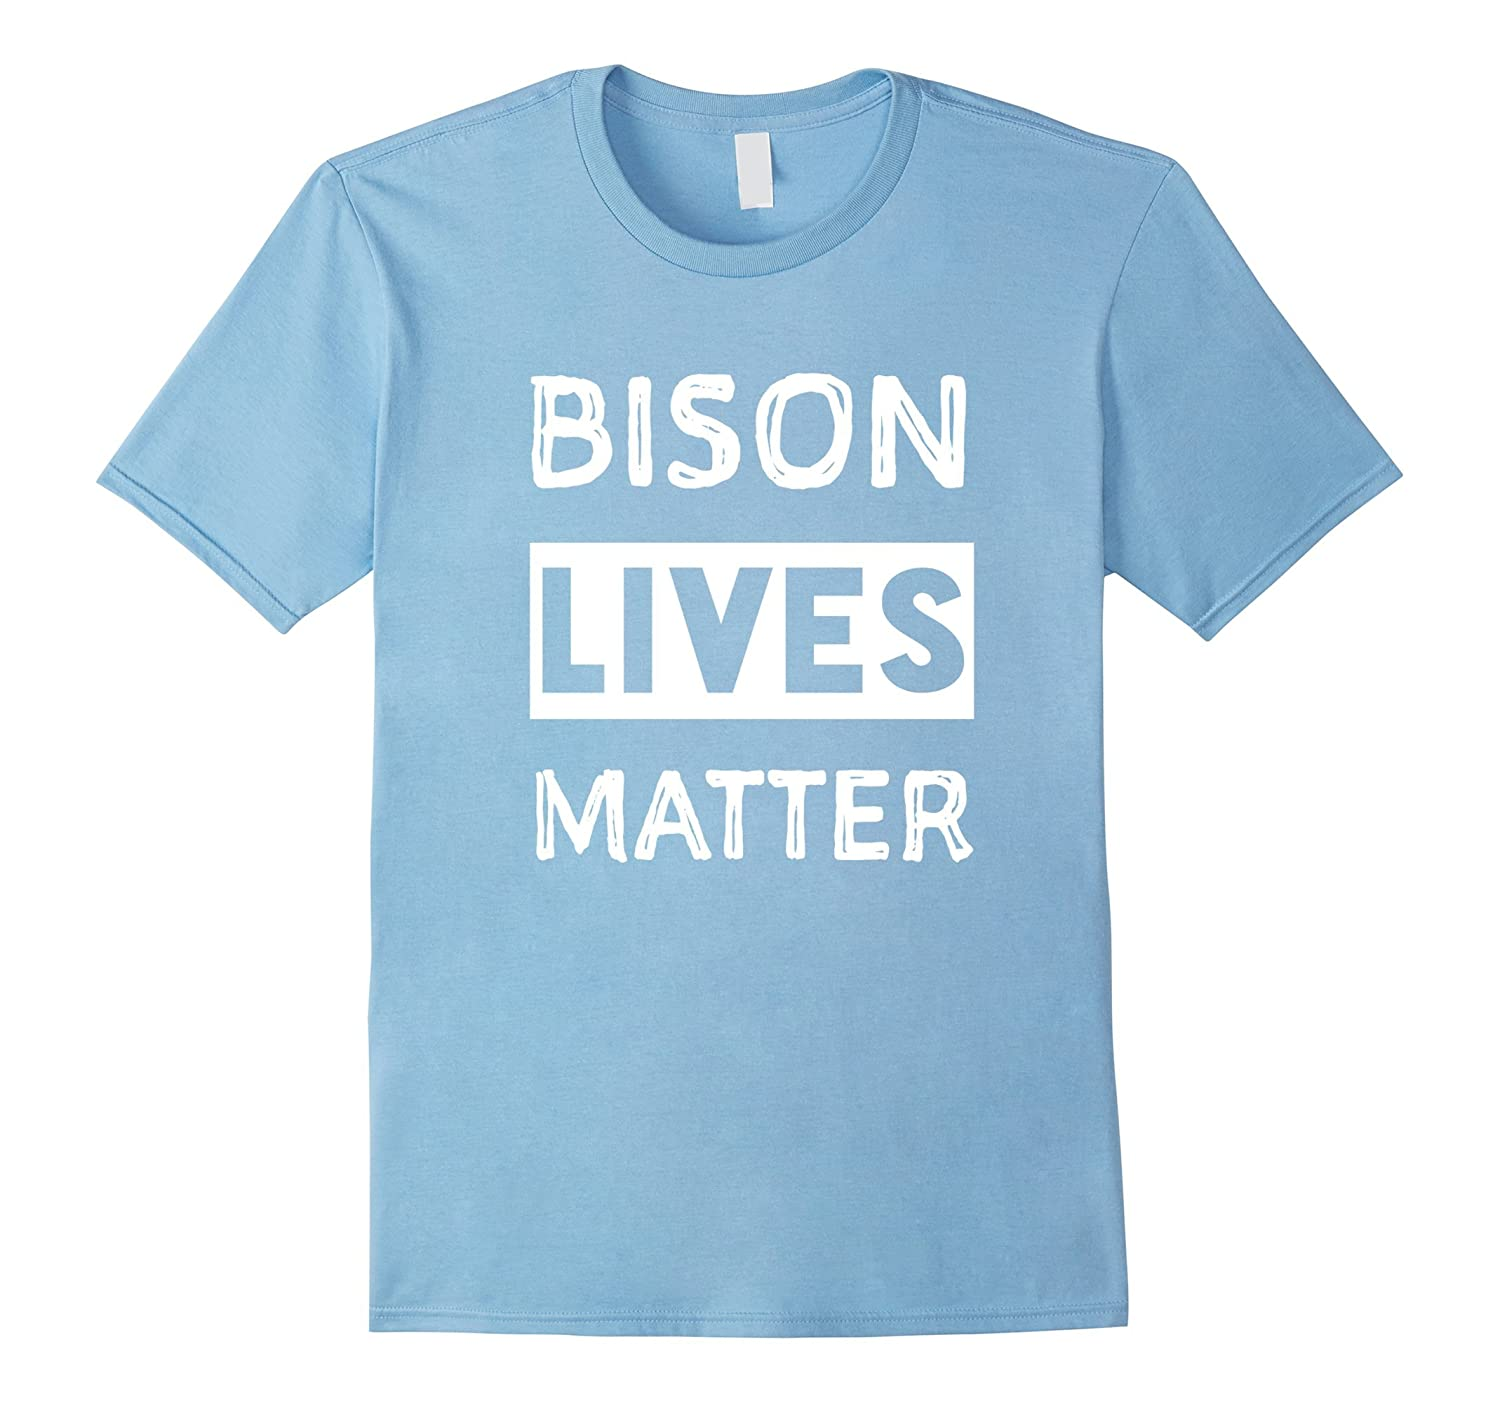 Bison lives matter shirt Funny bison shirt-PL